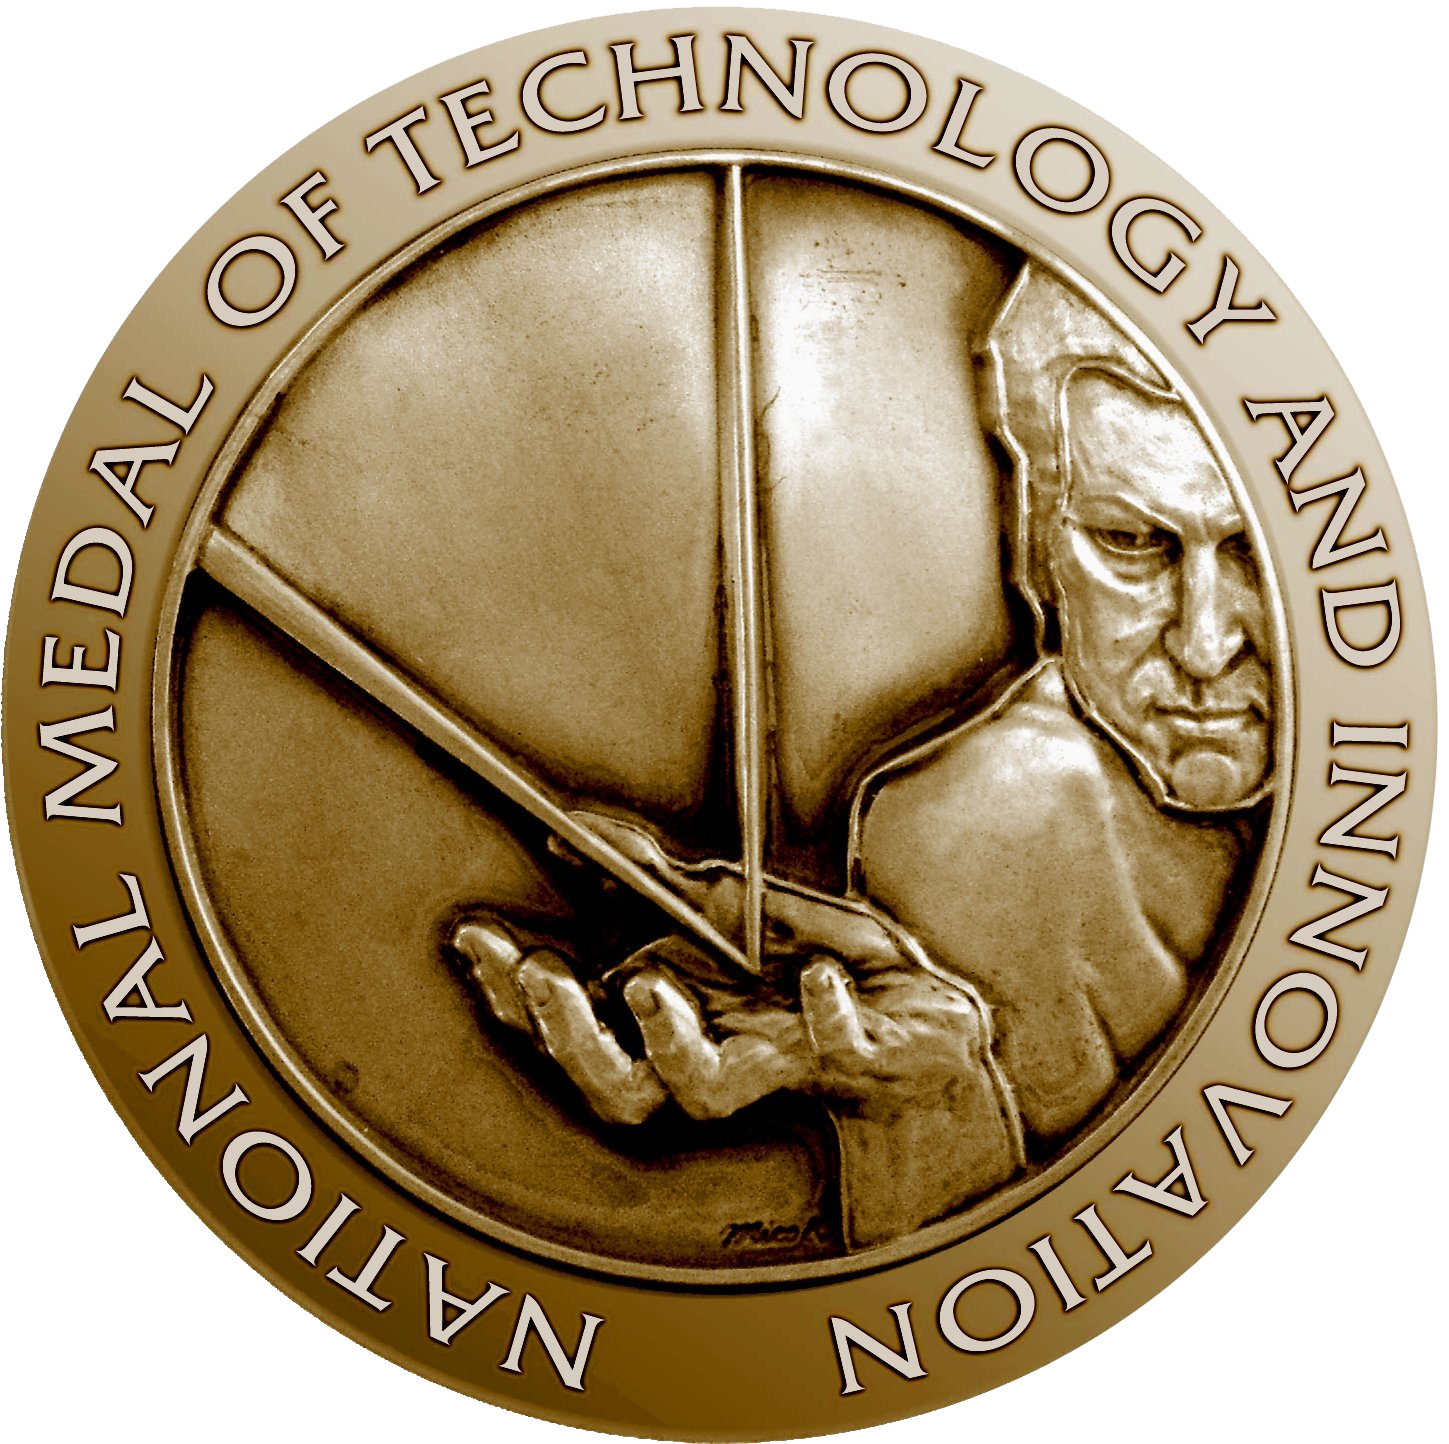 Medal image reads: National Medal of Technology and Innovation